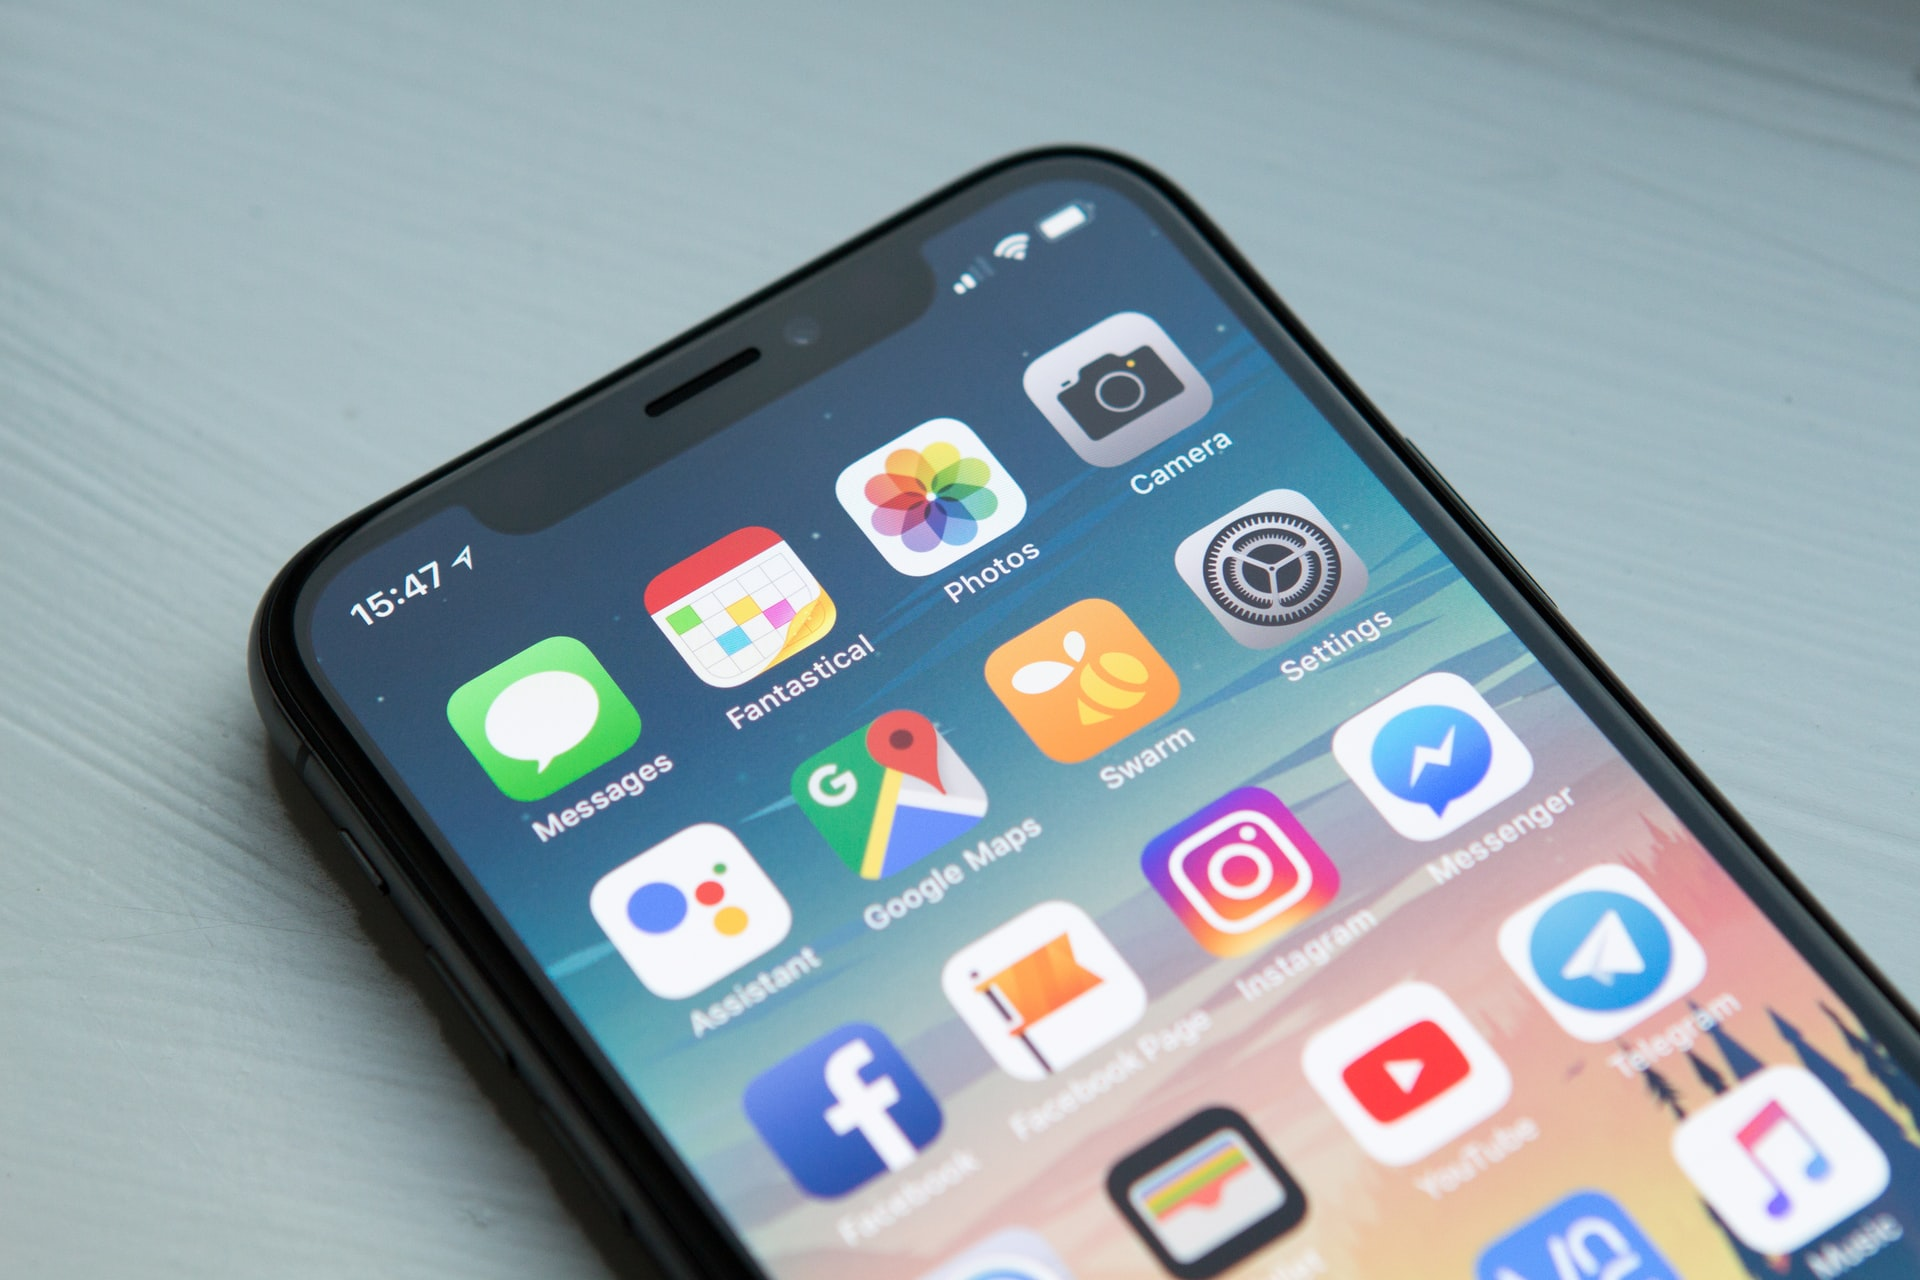 Which apps do you use most on your iPhone?